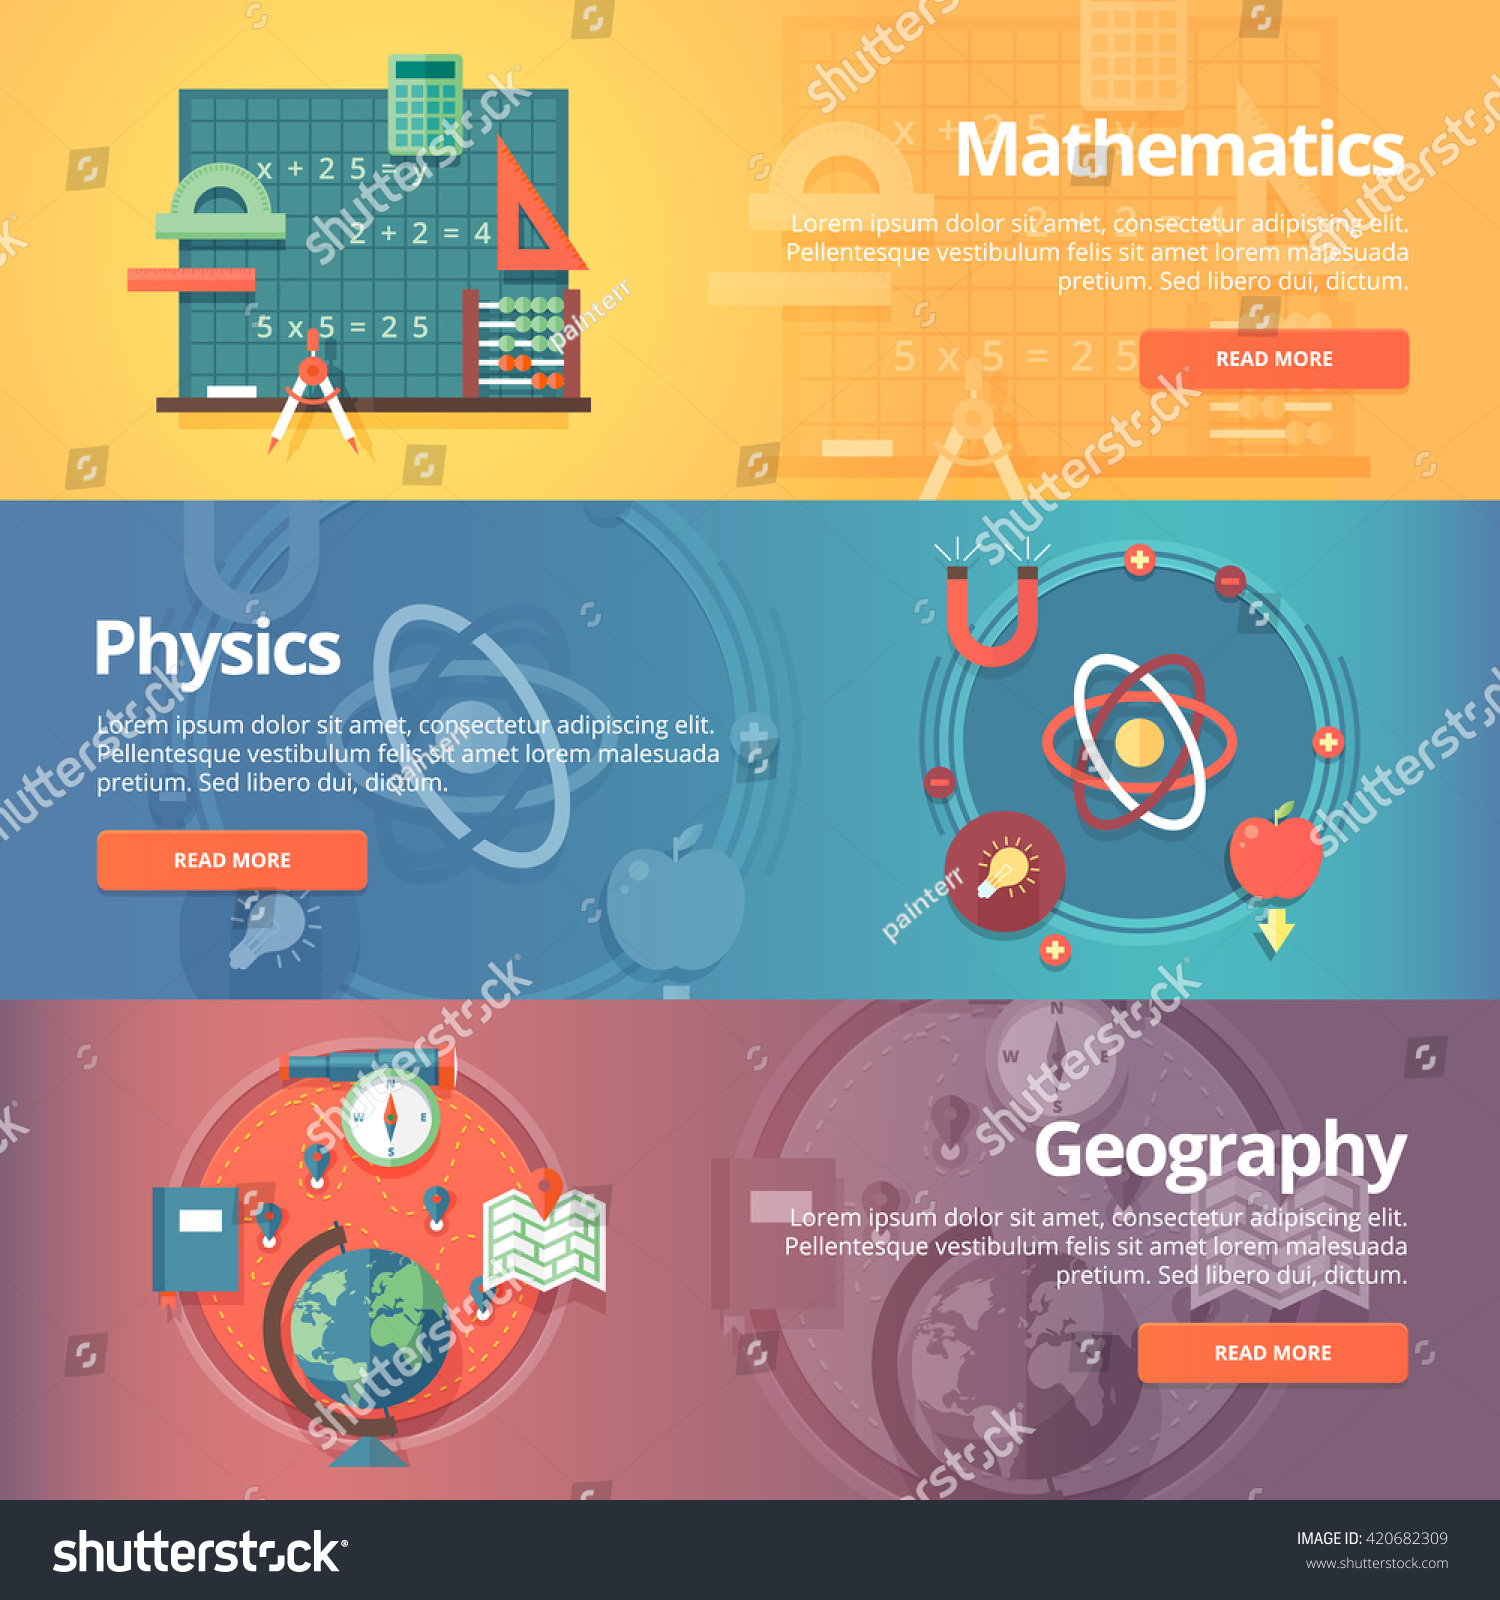 Elementary mathematics basic math physics subject vector de elementary mathematics basic math physics subject geography science school subjects education malvernweather Gallery